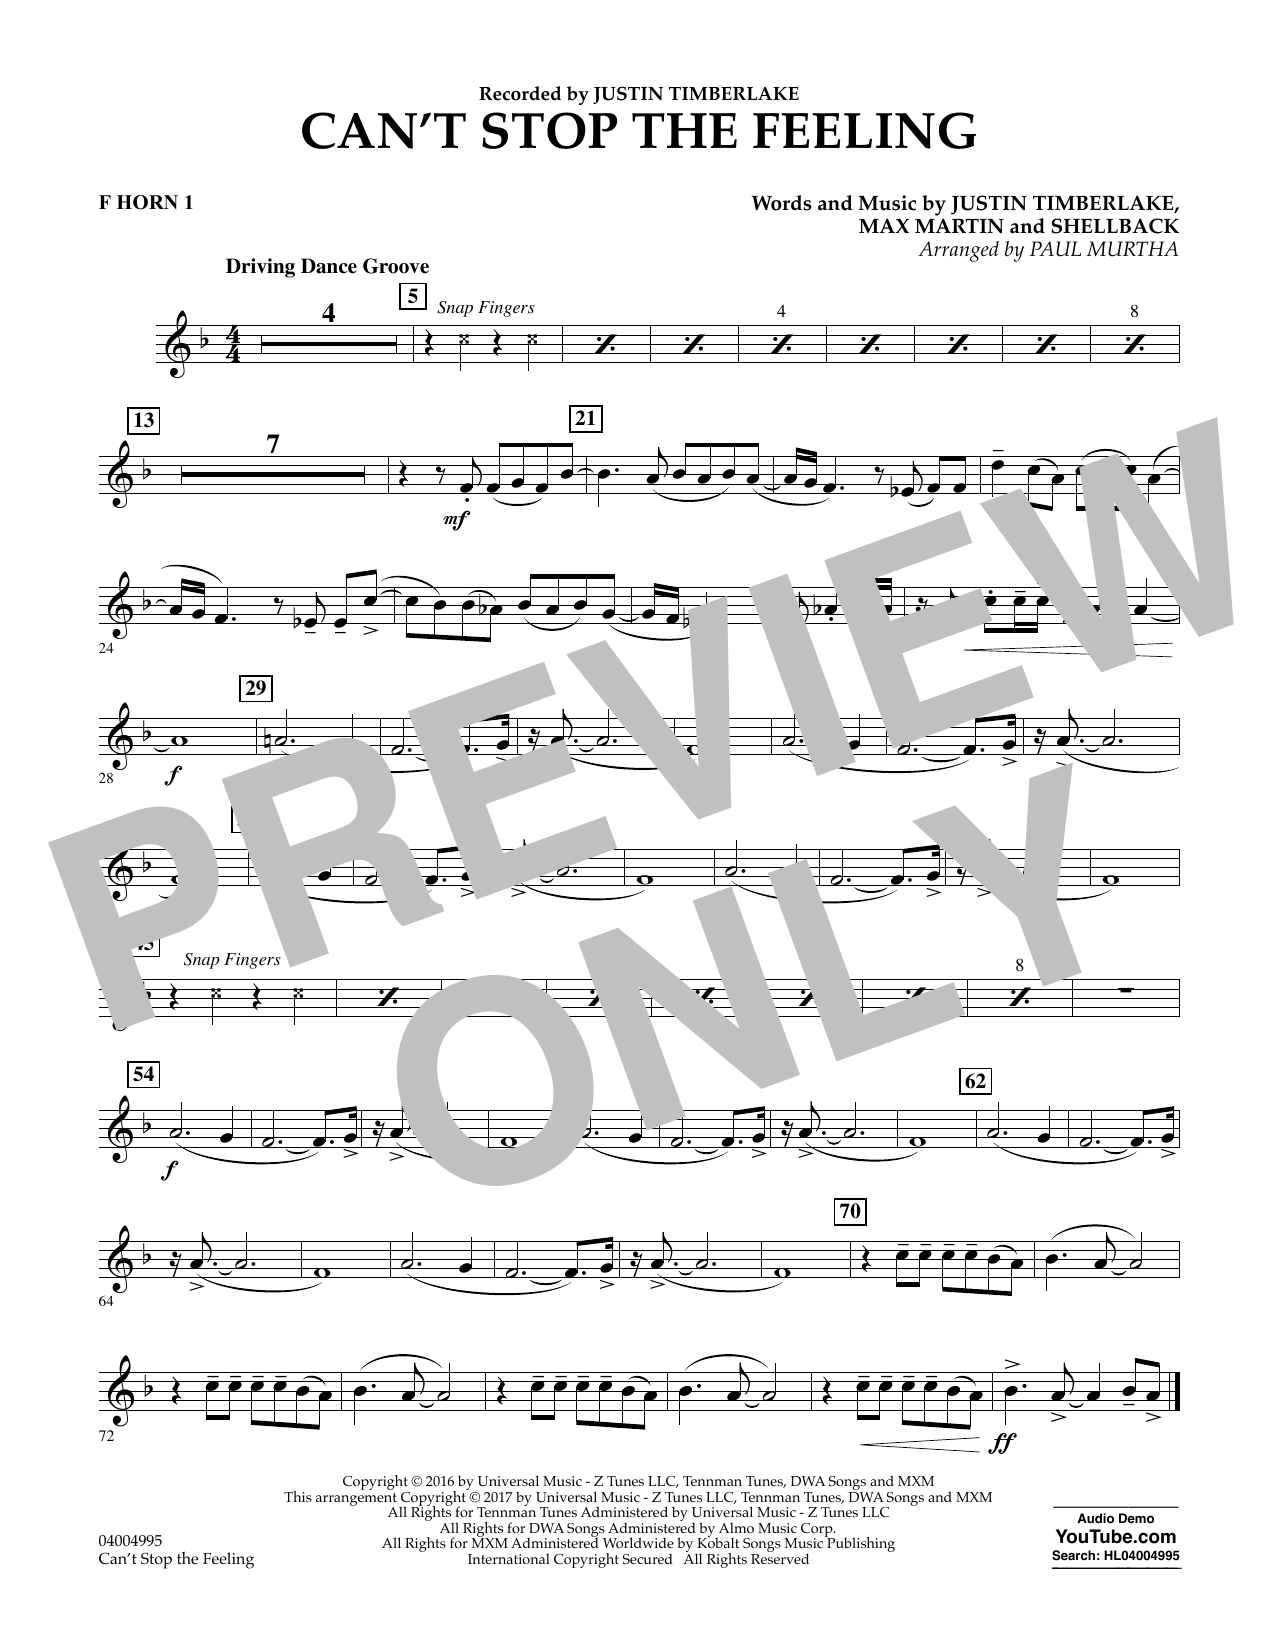 Can't Stop the Feeling - F Horn 1 Sheet Music